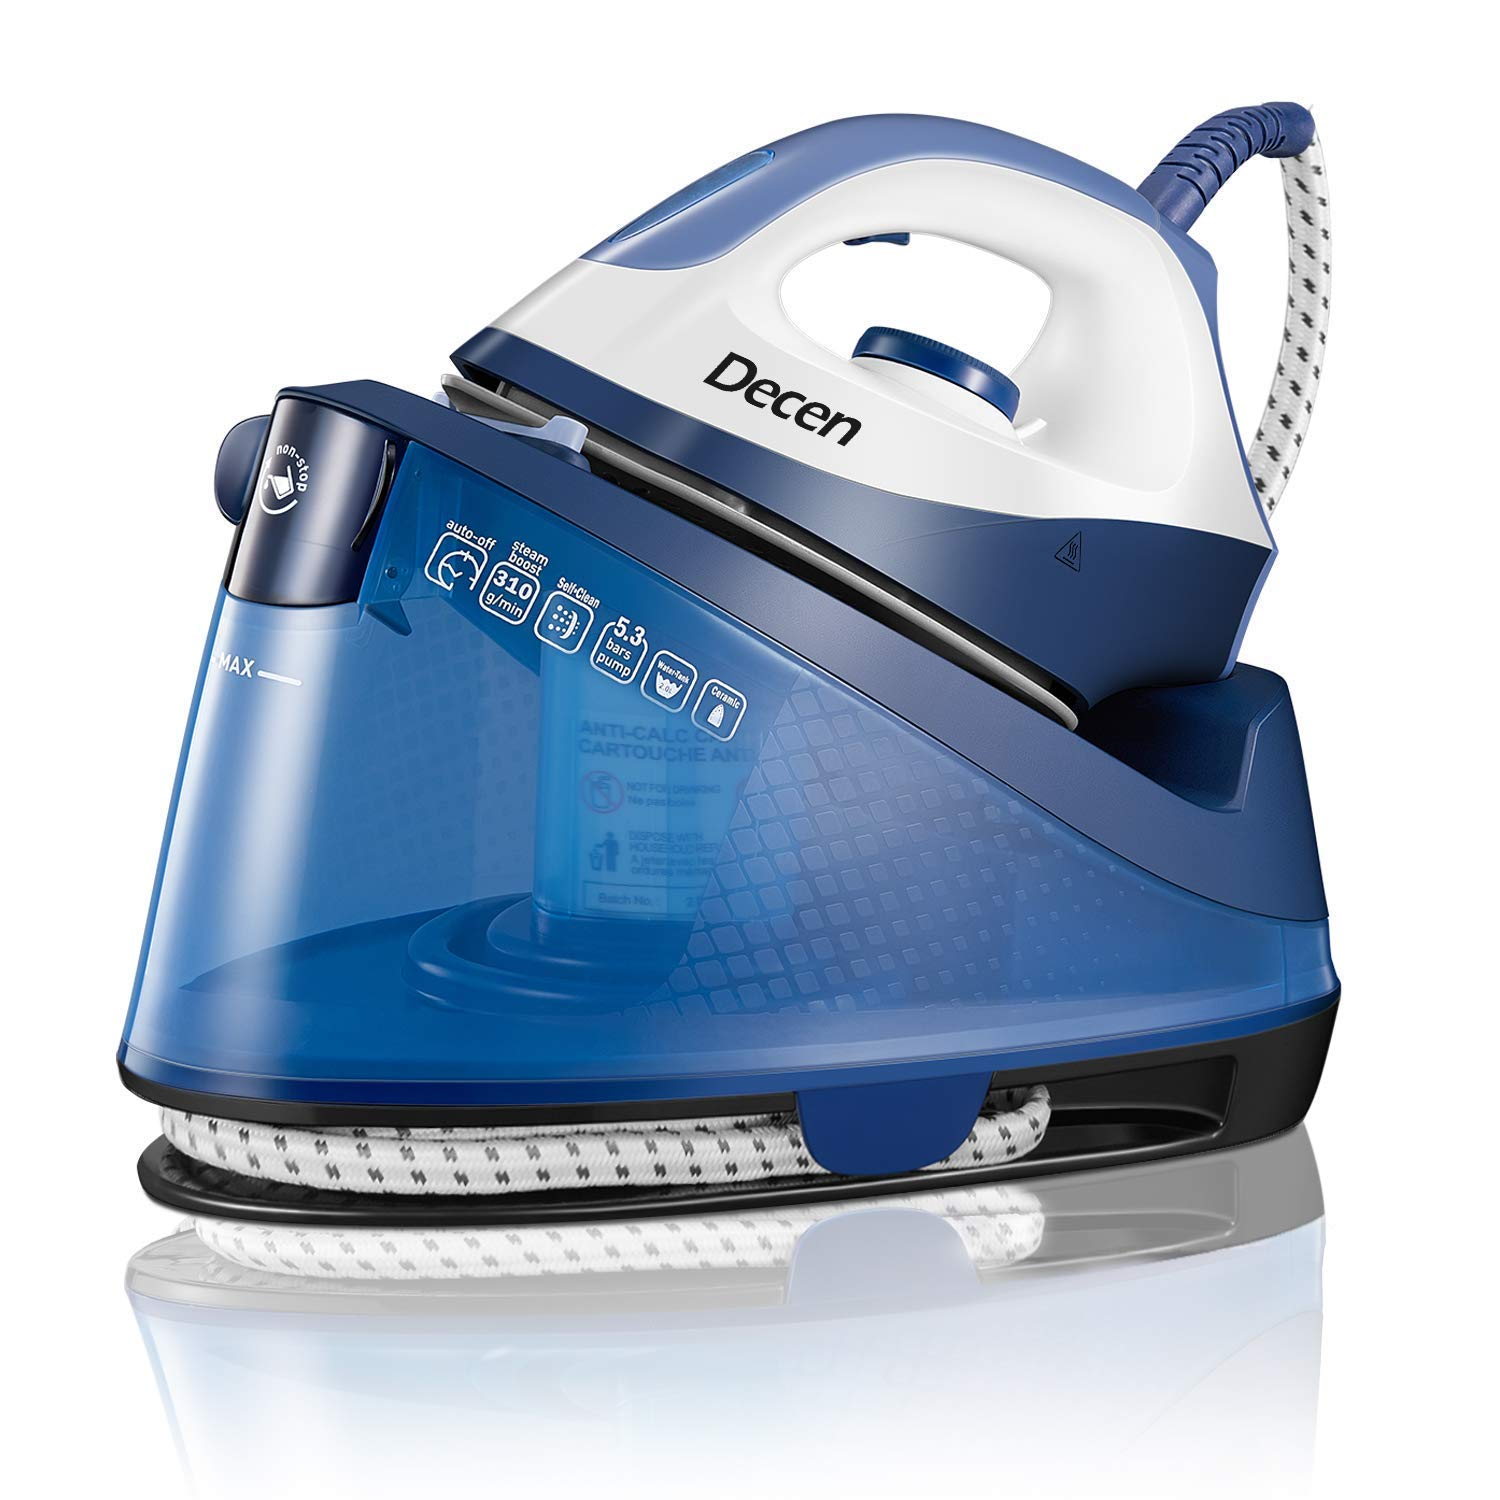 Decen Steam Generator Iron with 2 Liters Big Capacity